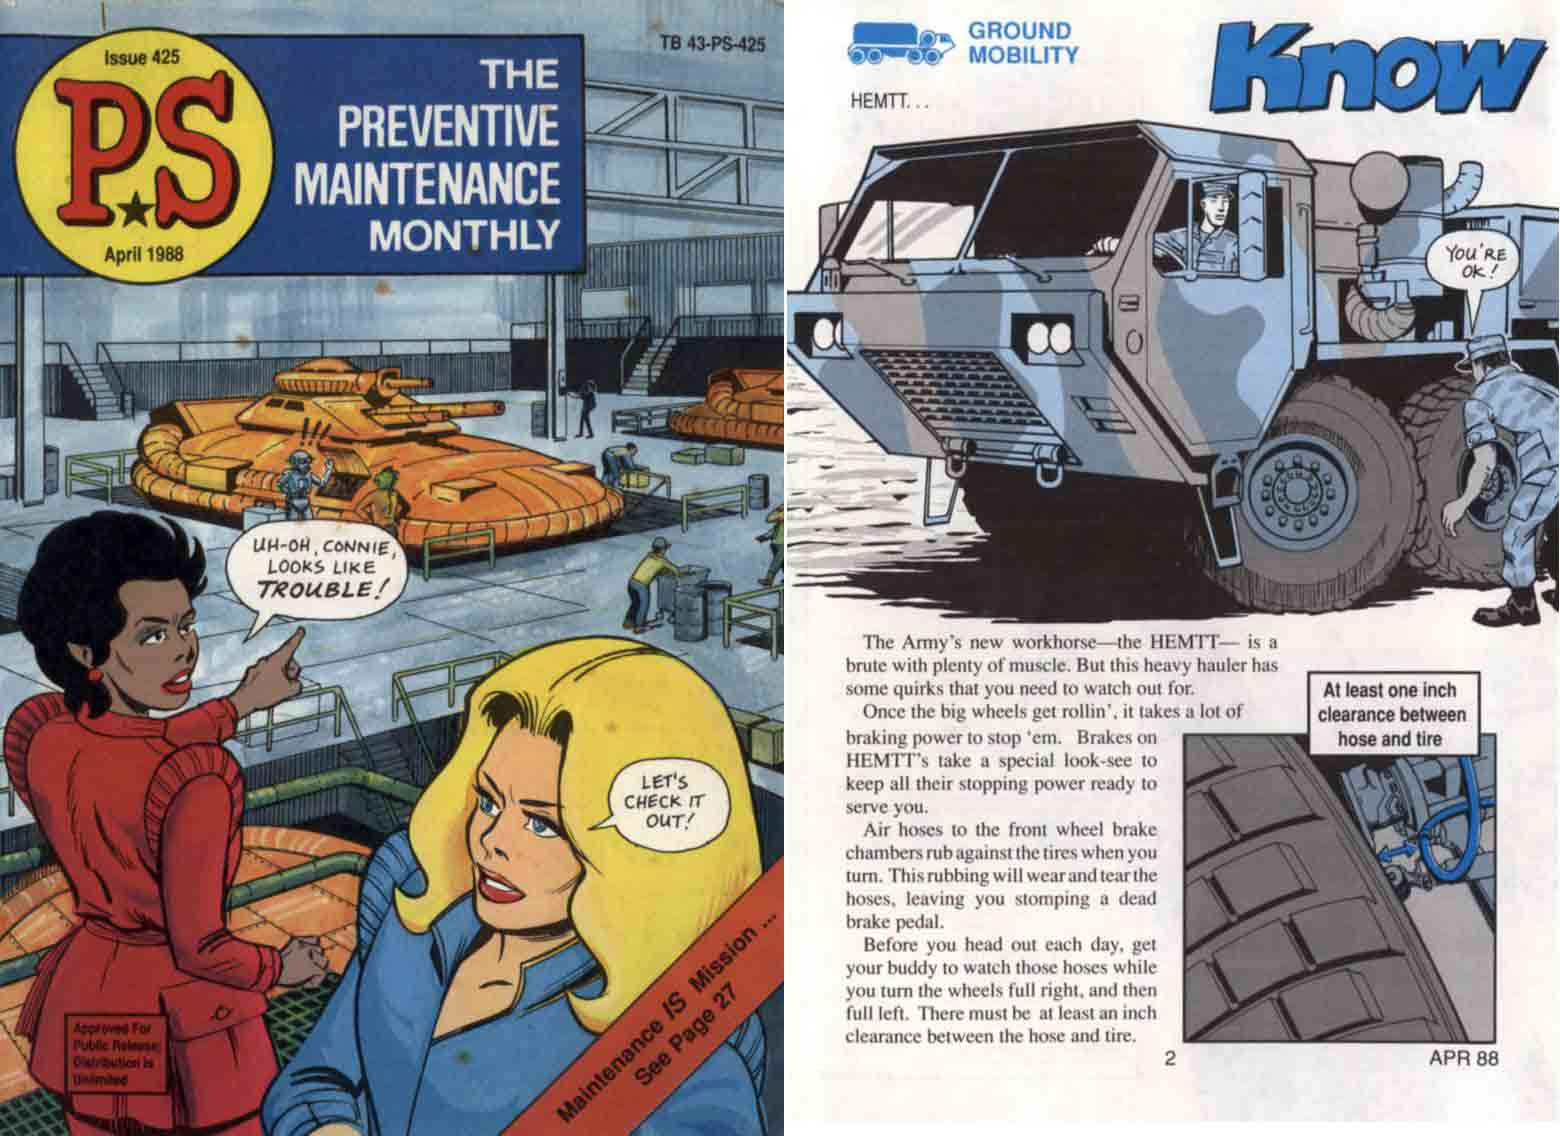 PS Preventive Maint Monthly No 425, 1988 (US Army Comic)